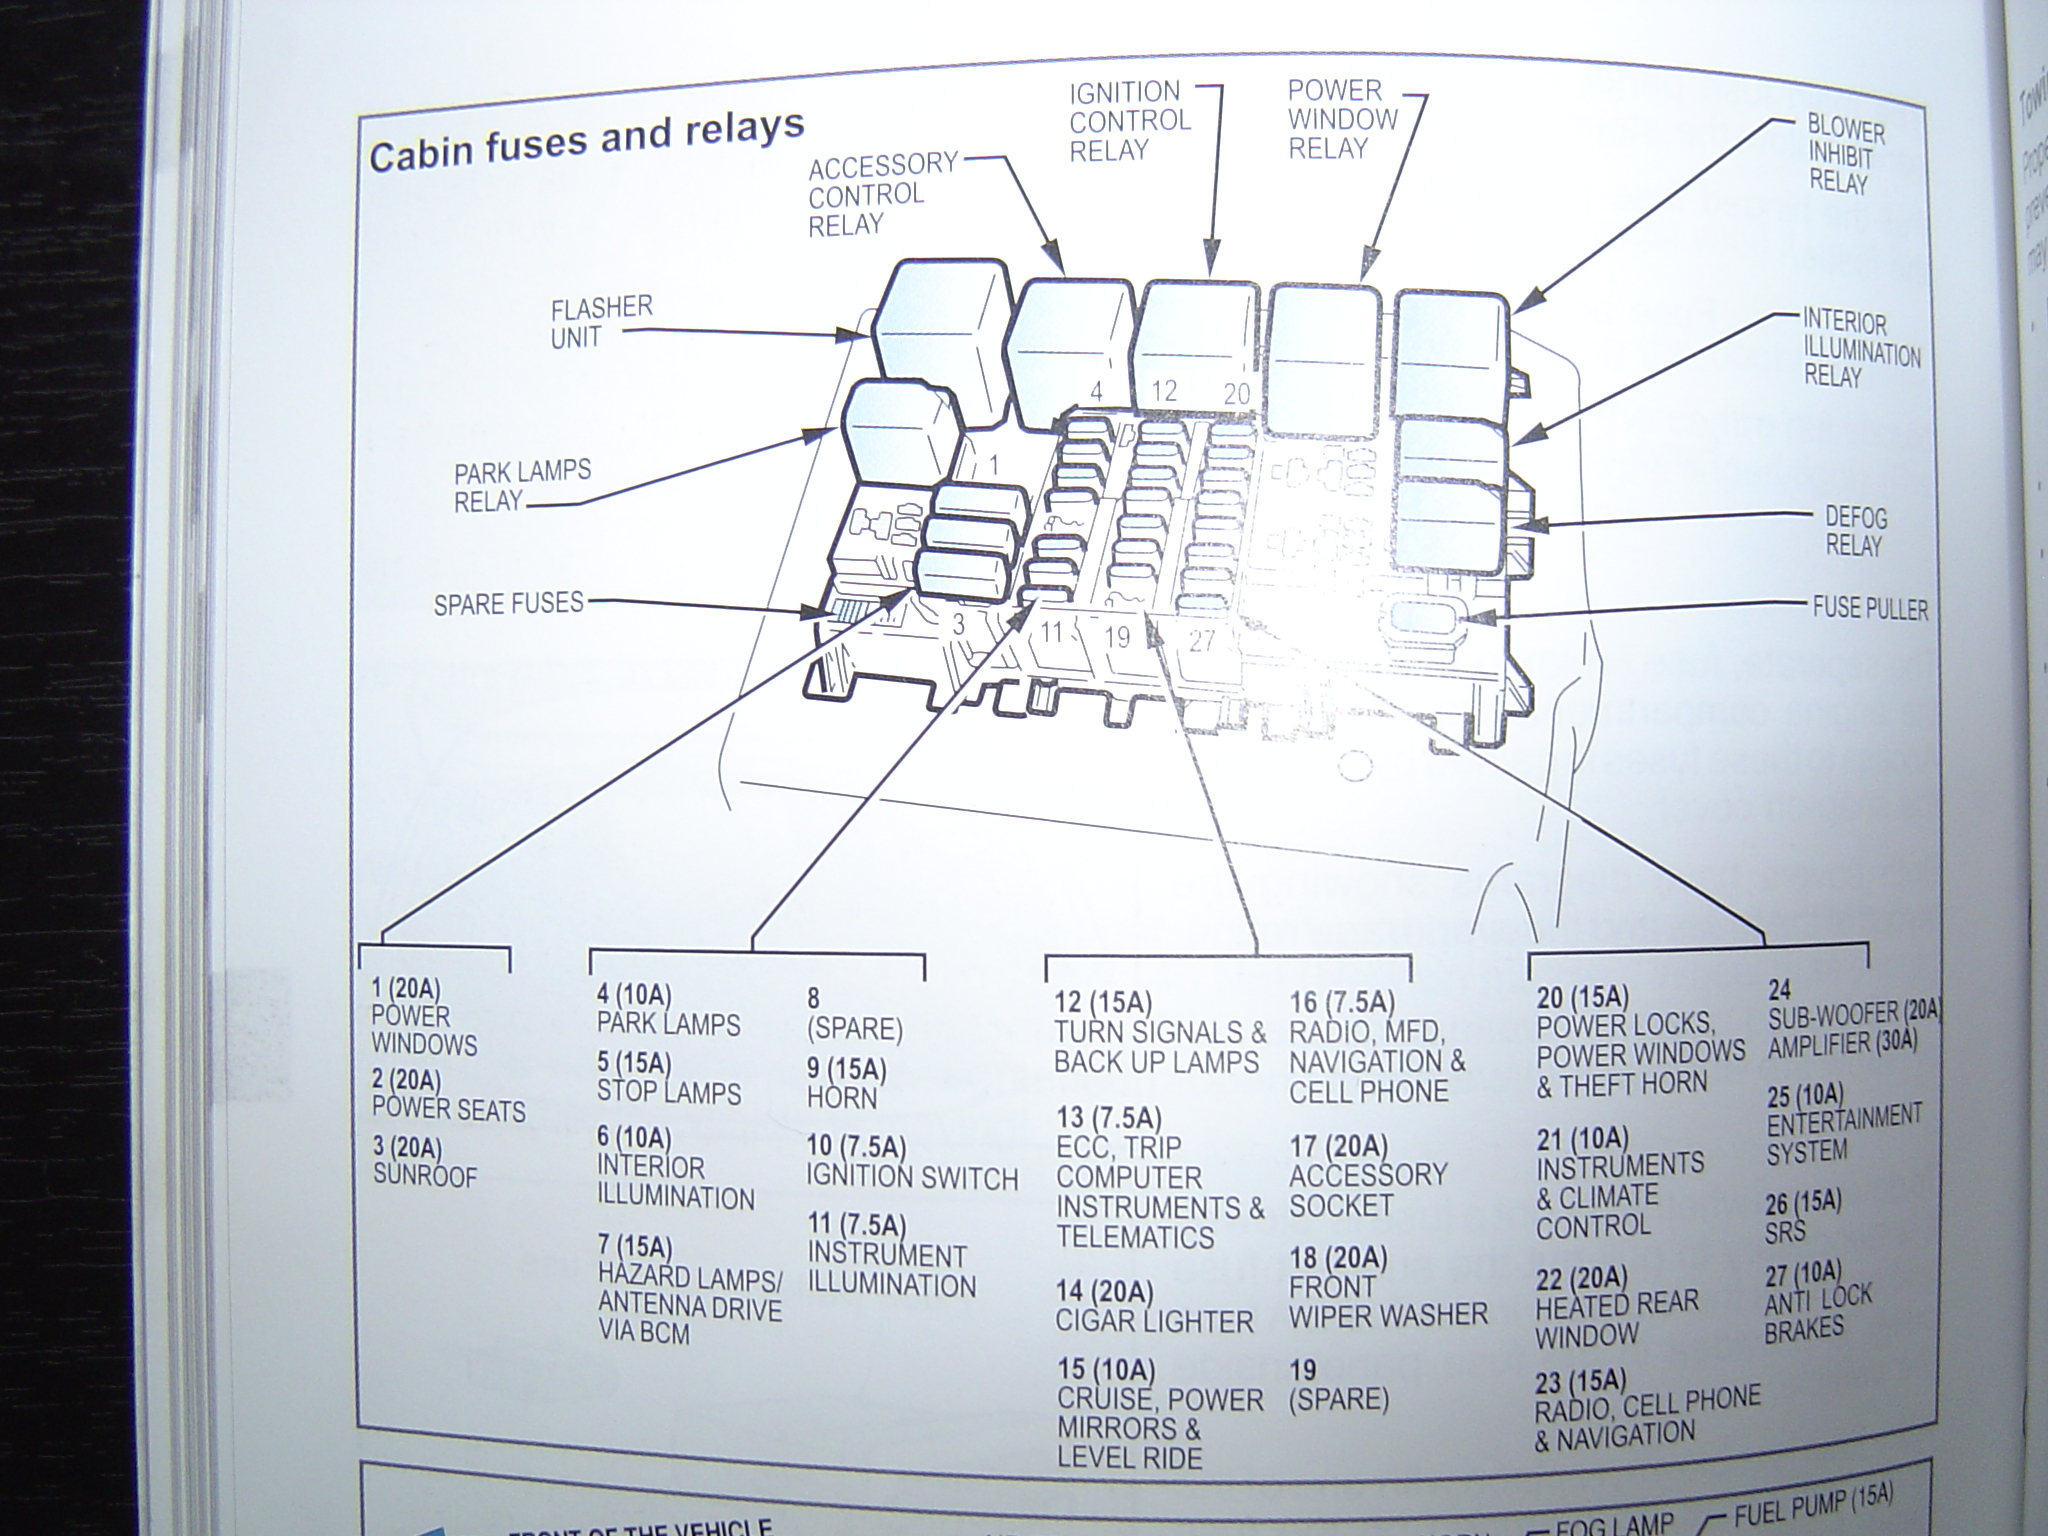 VY_CABIN_FUSEBOX cabin fuse box diagrams ba bf vx vy vz ve a fuse box diagrams for a 1998 ford motorhome at suagrazia.org